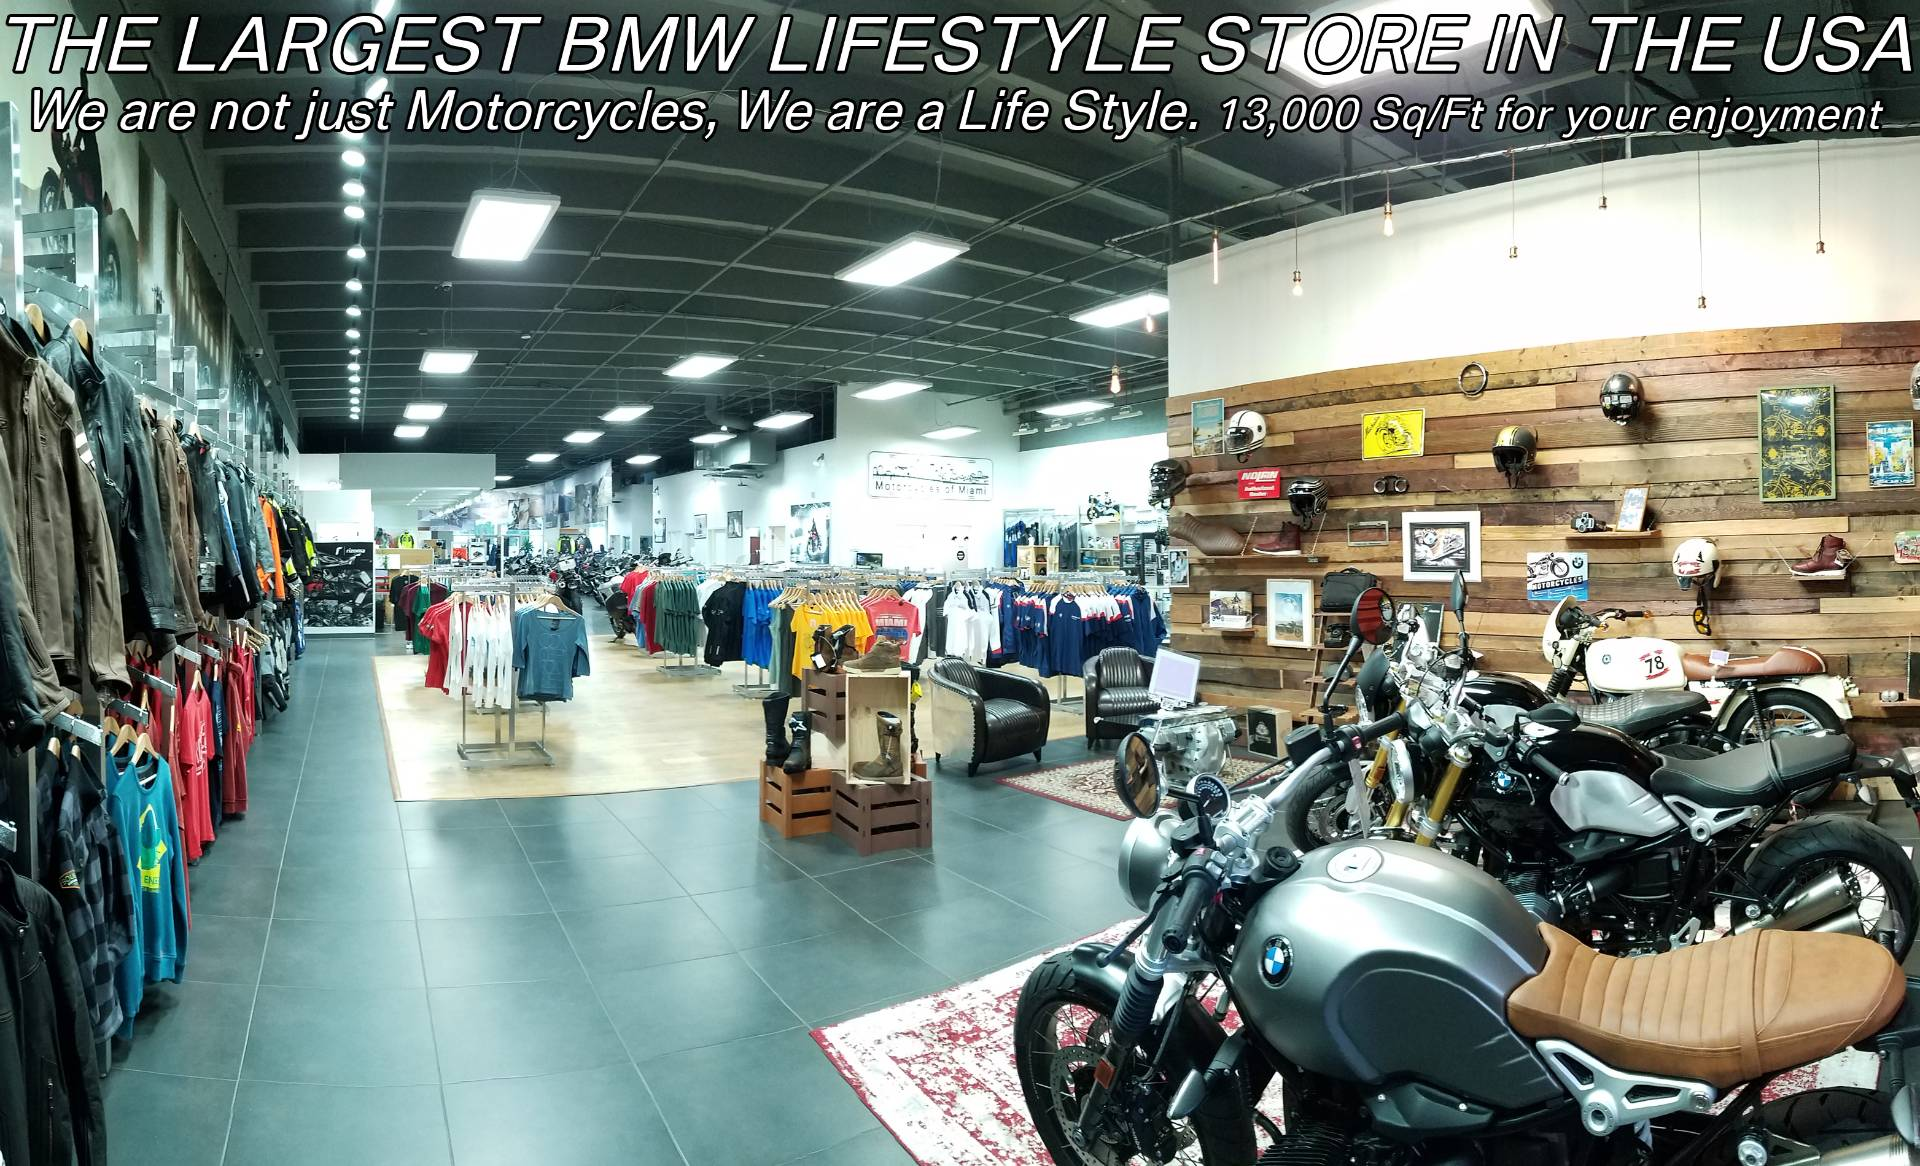 New 2019 BMW R NineT Scrambler for sale, BMW for sale, BMW Motorcycle Café Racer, new BMW Scrambler, Srambler, BMW. BMW Motorcycles of Miami, Motorcycles of Miami - Photo 29